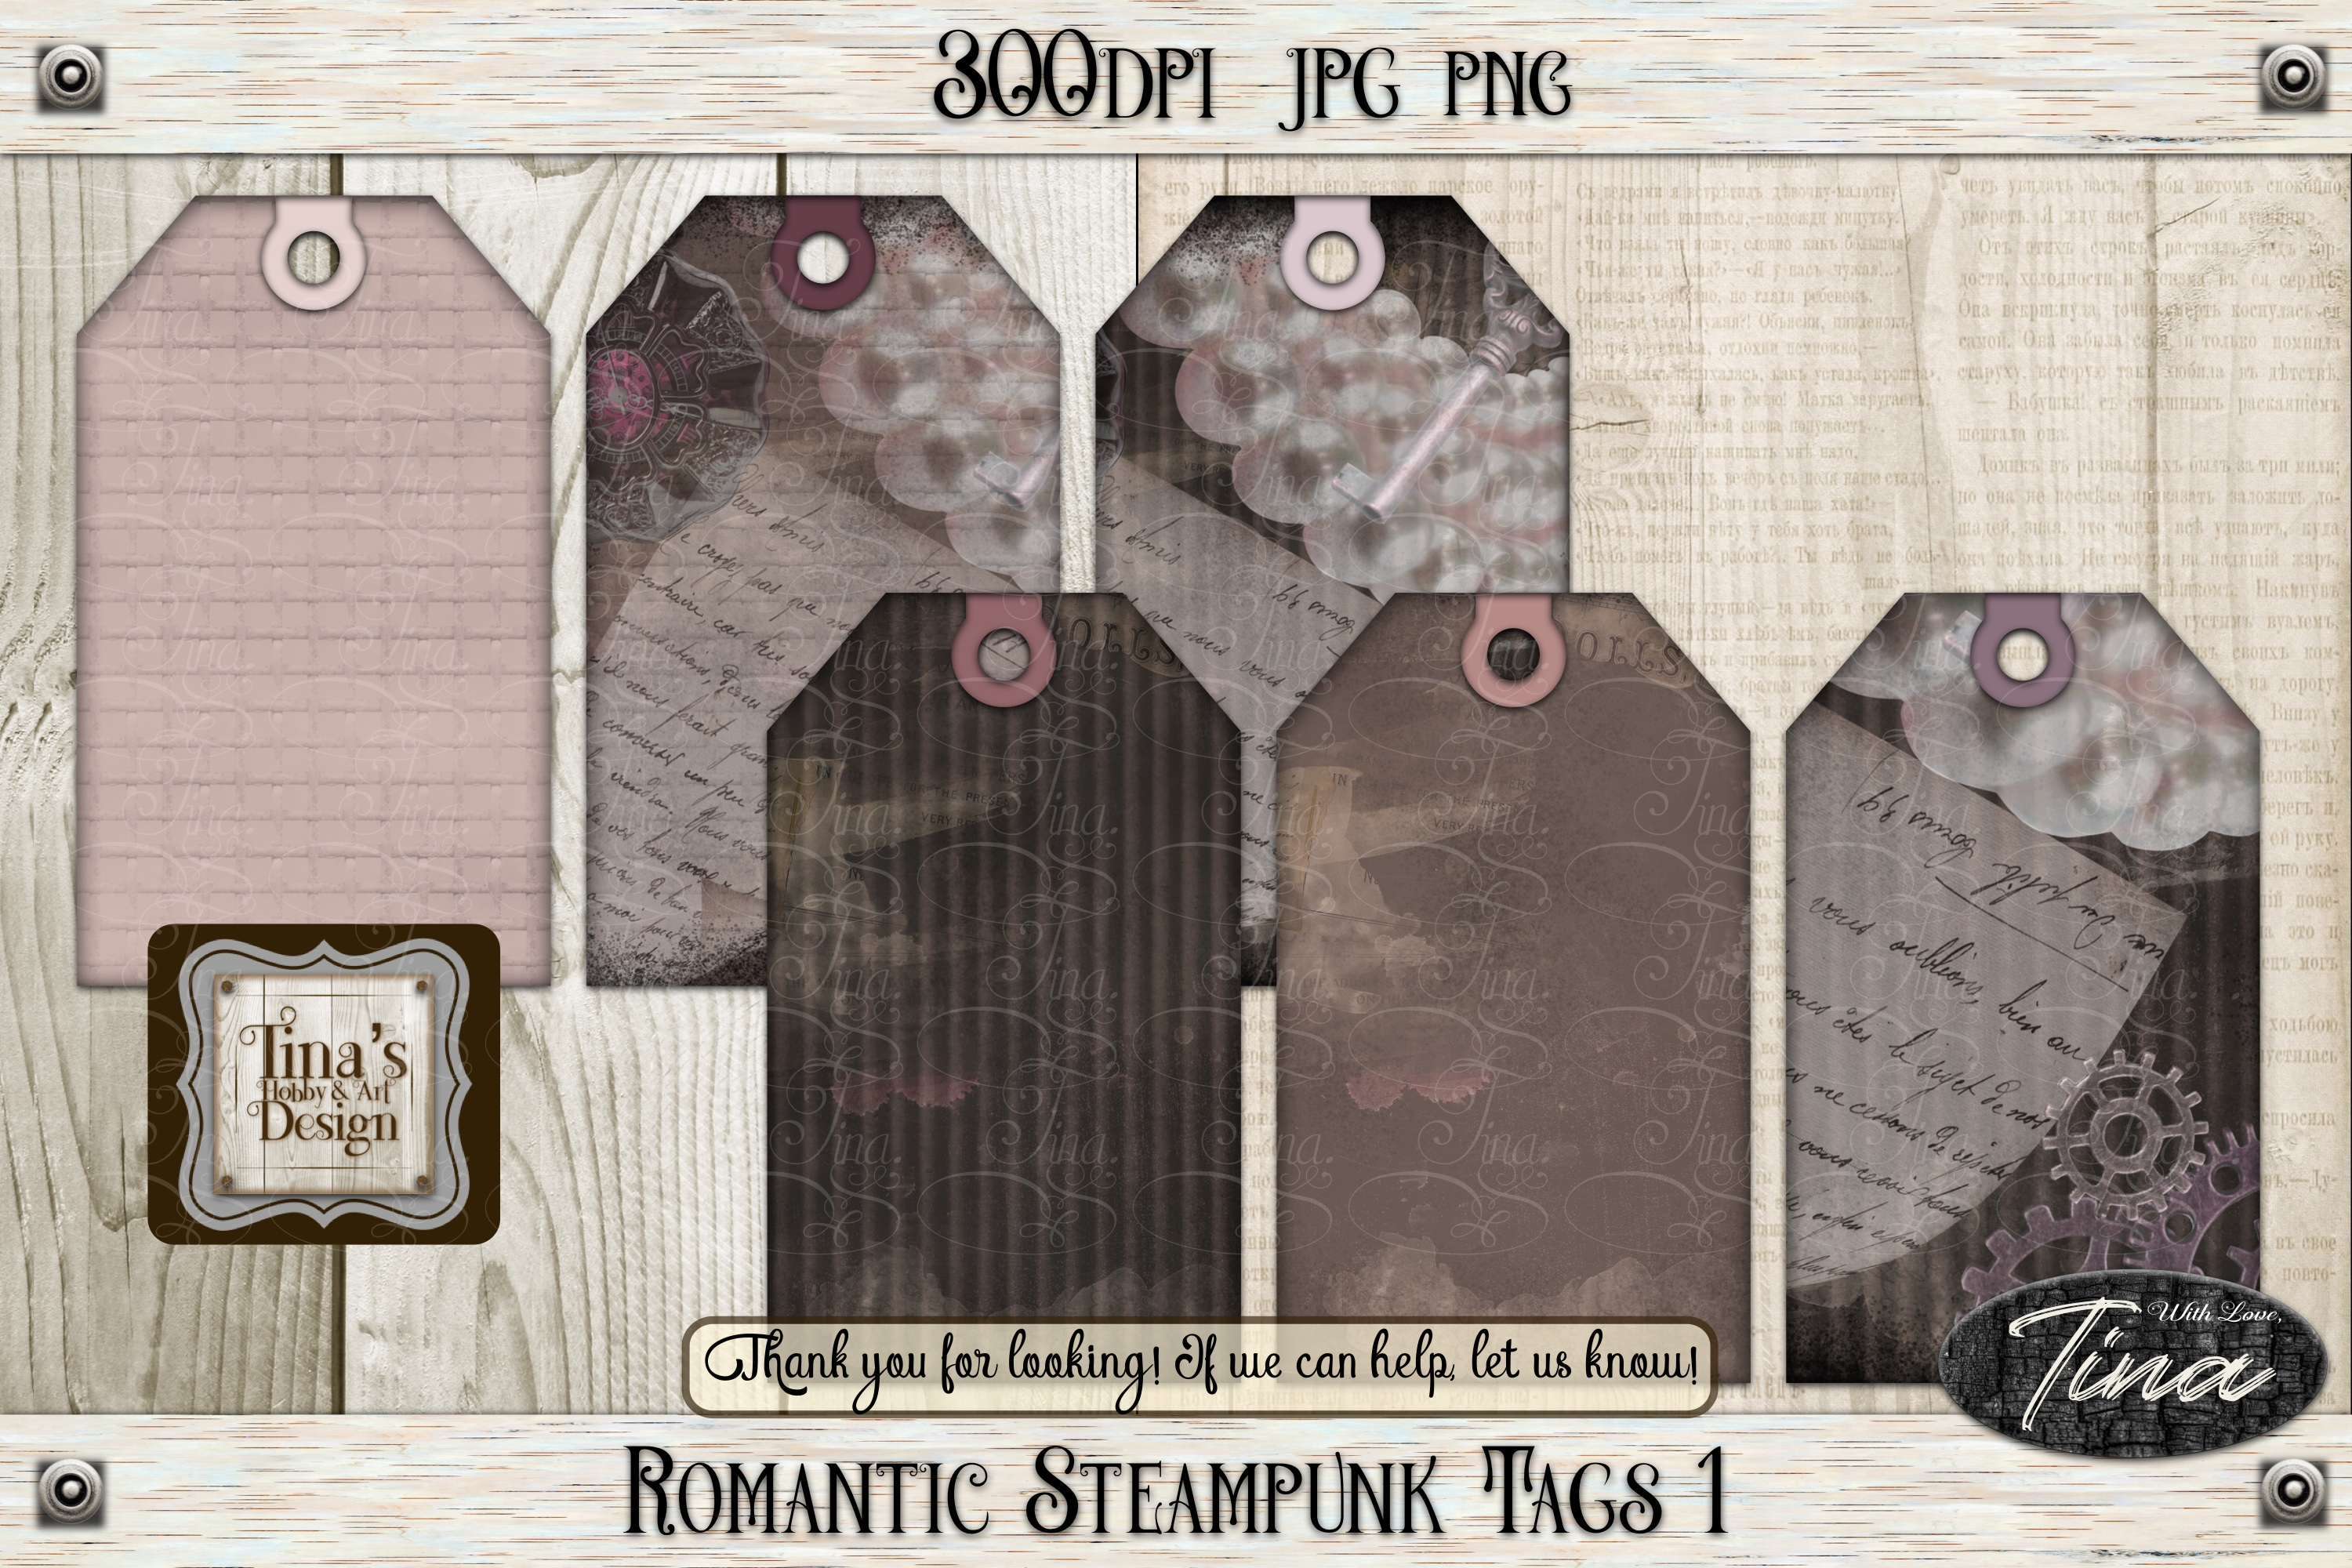 Romantic Steampunk 12 x 12 Collage Mauve Grunge 101918RS12 example image 3